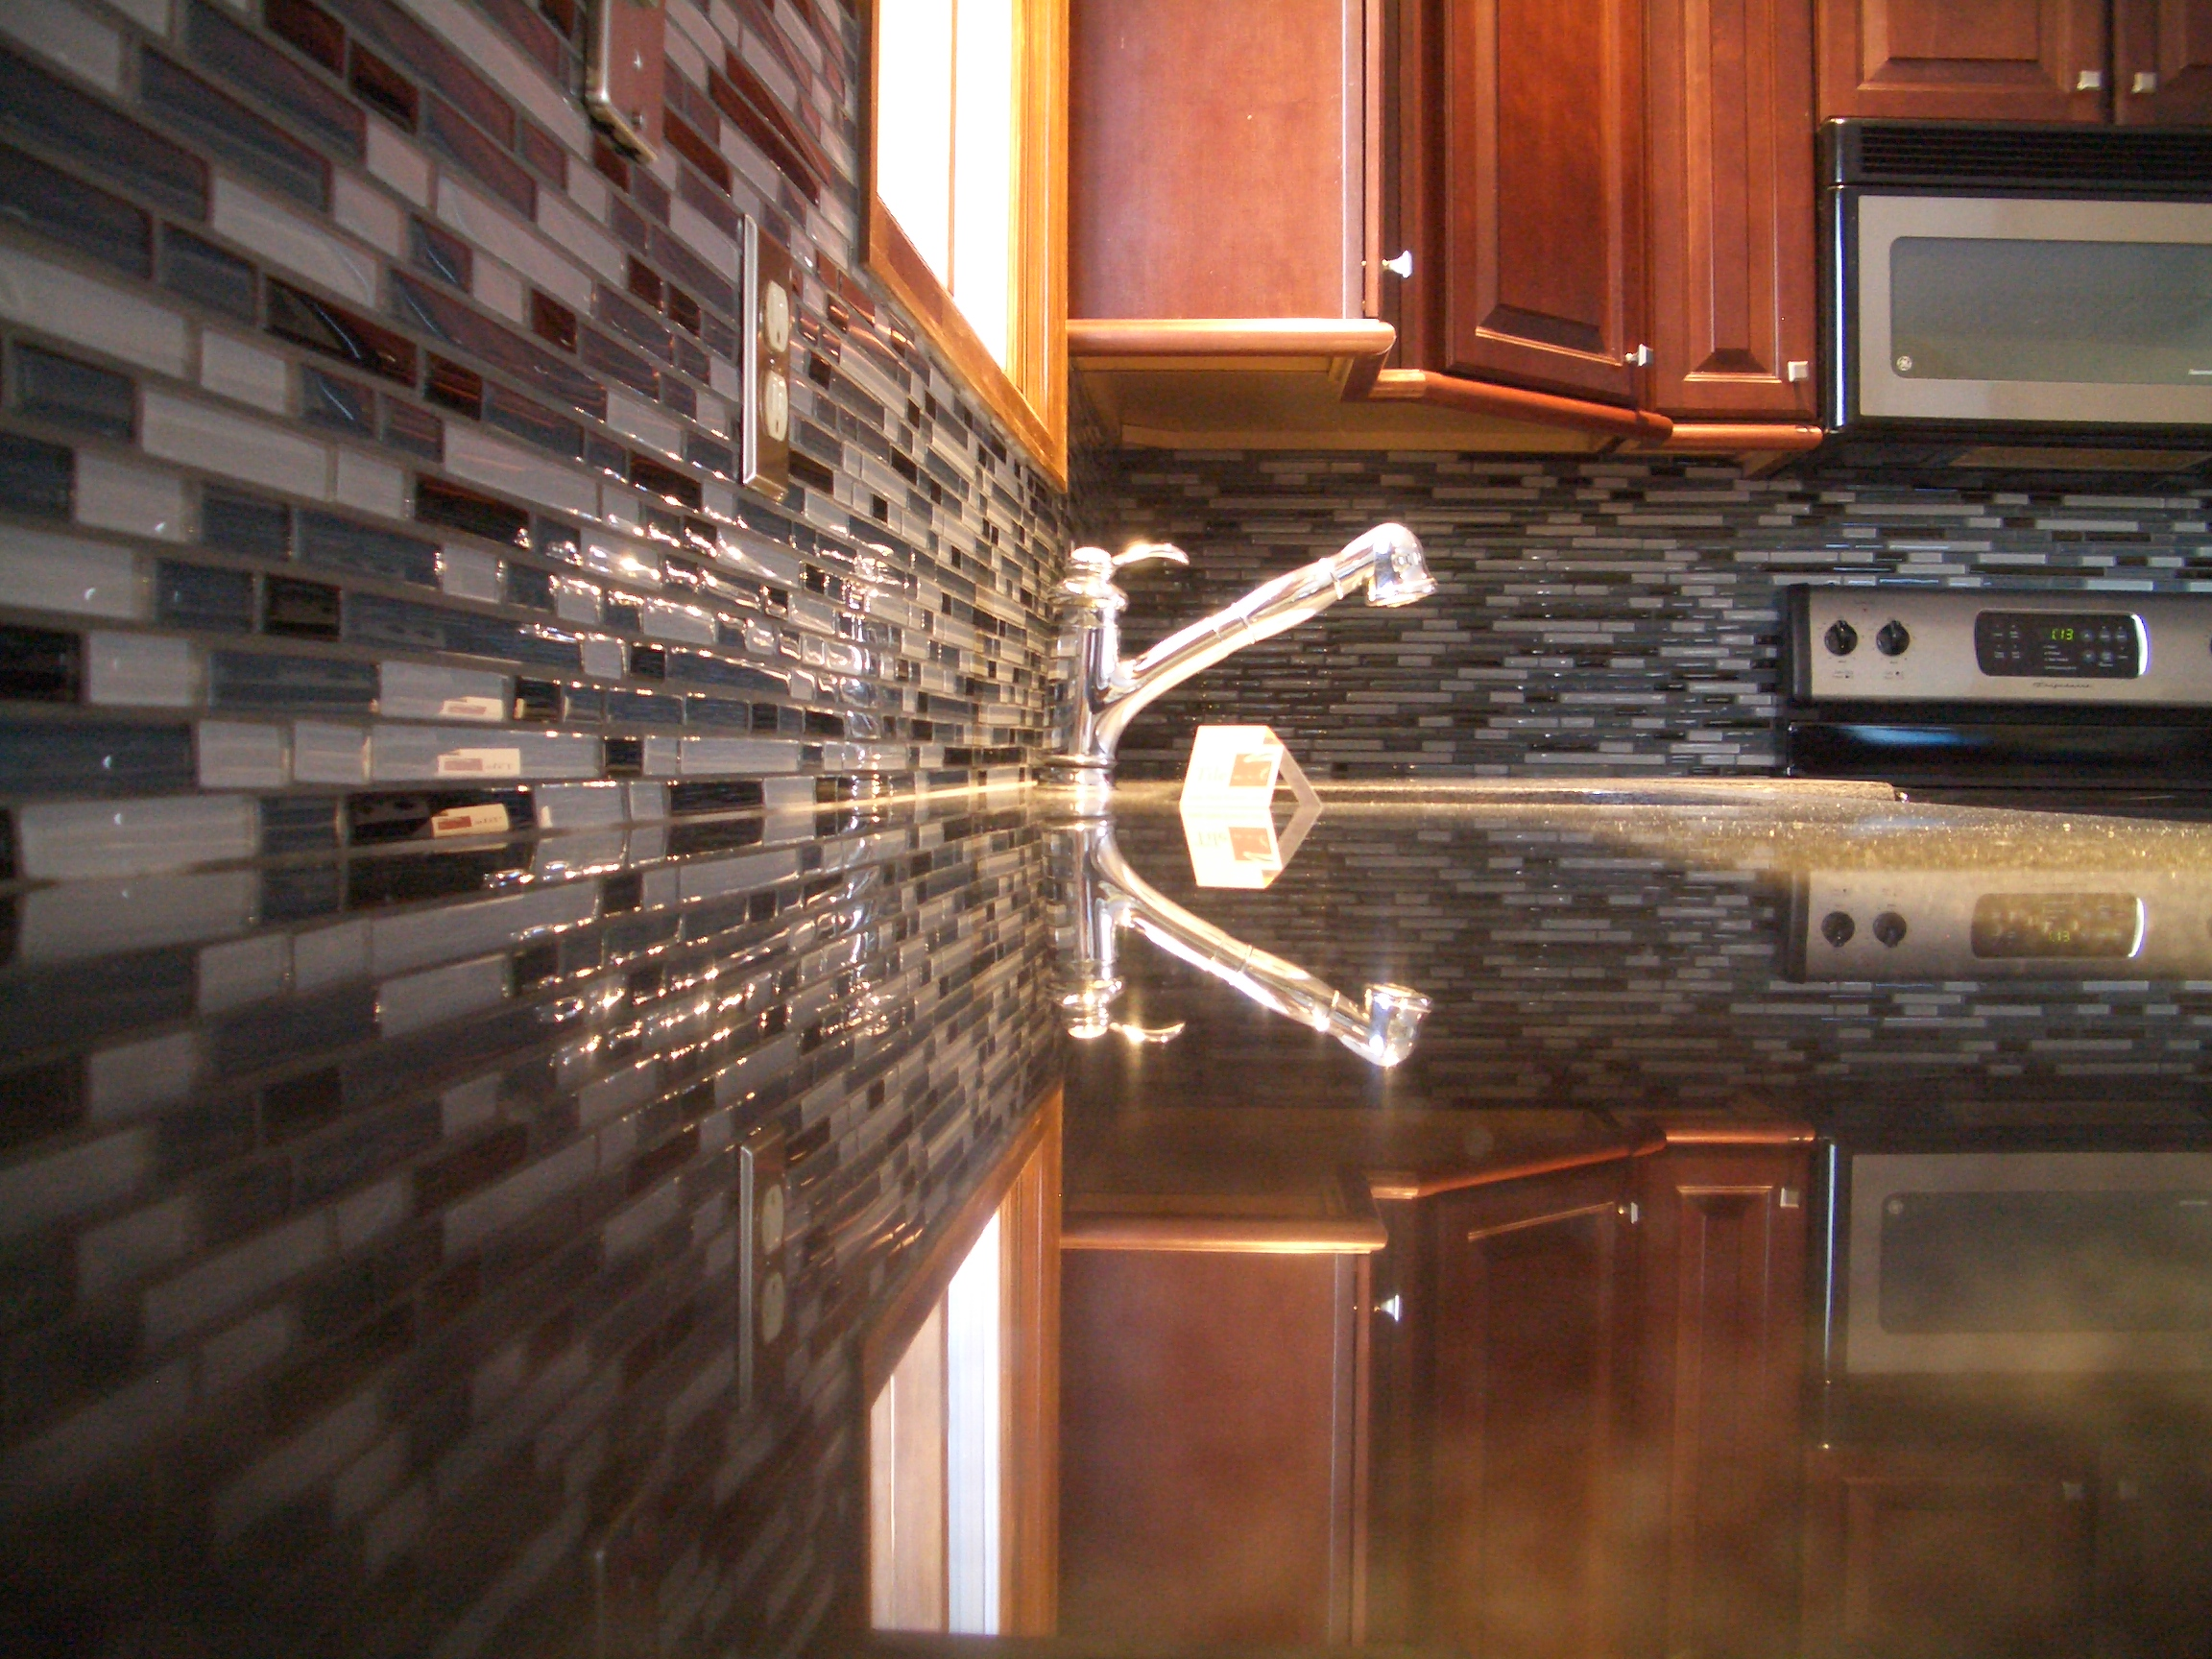 glass tile kitchen backsplash in fort collins backsplash in kitchen Glass tile kitchen backsplash in Fort Collins